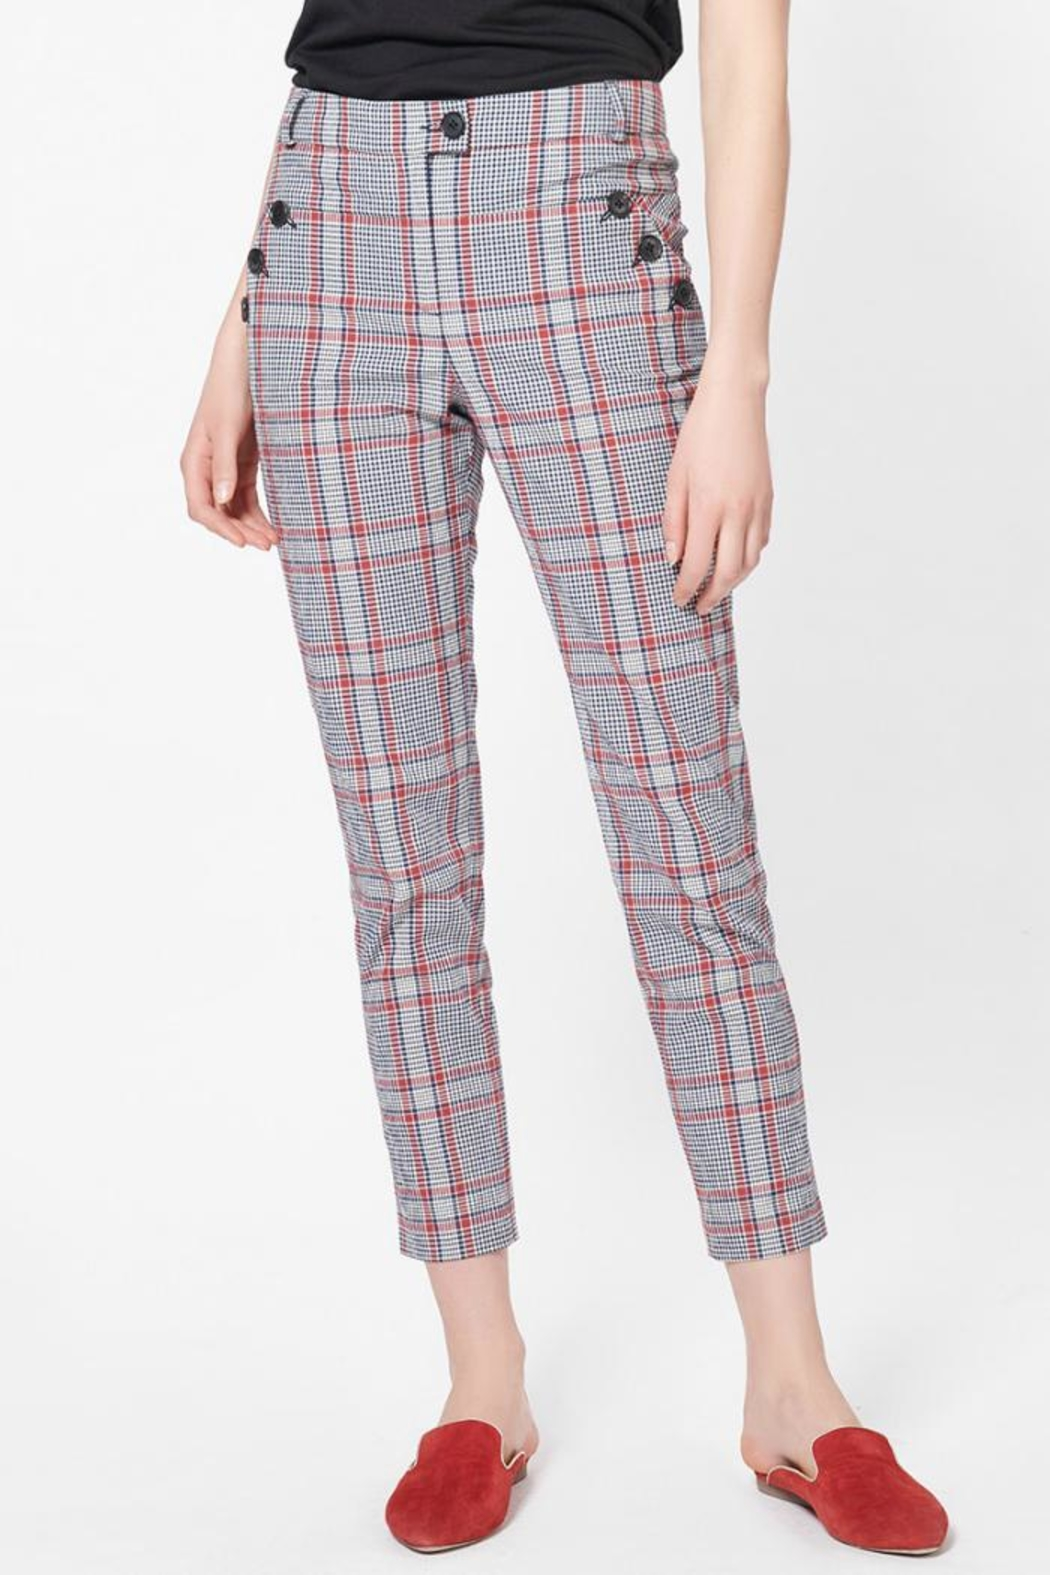 Veronica Beard Farrow Pants - Front Cropped Image